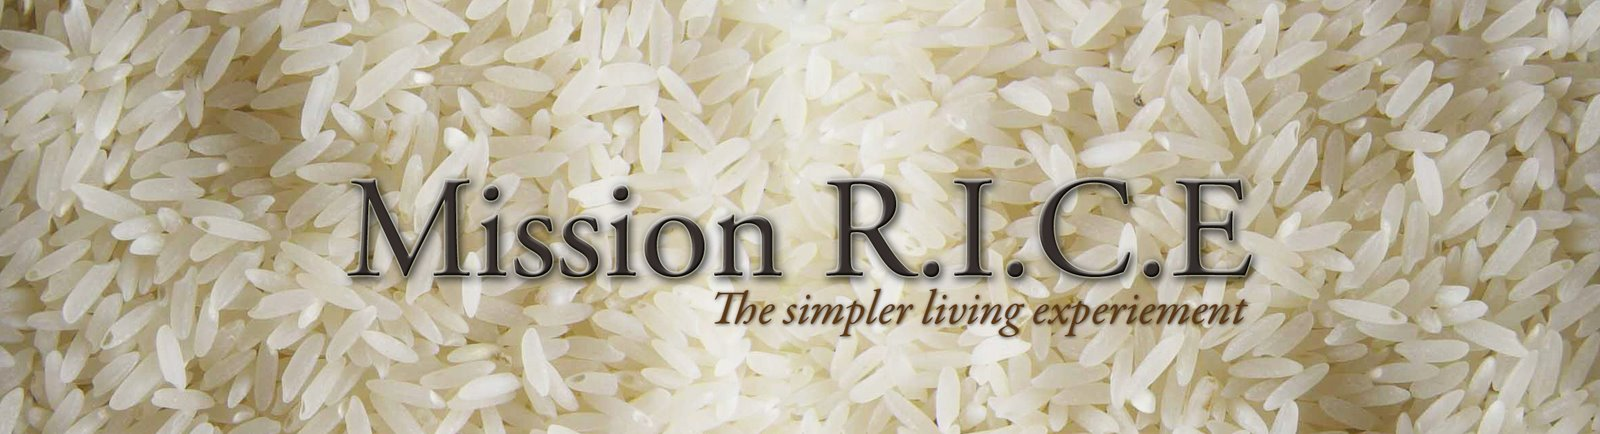 Mission RICE